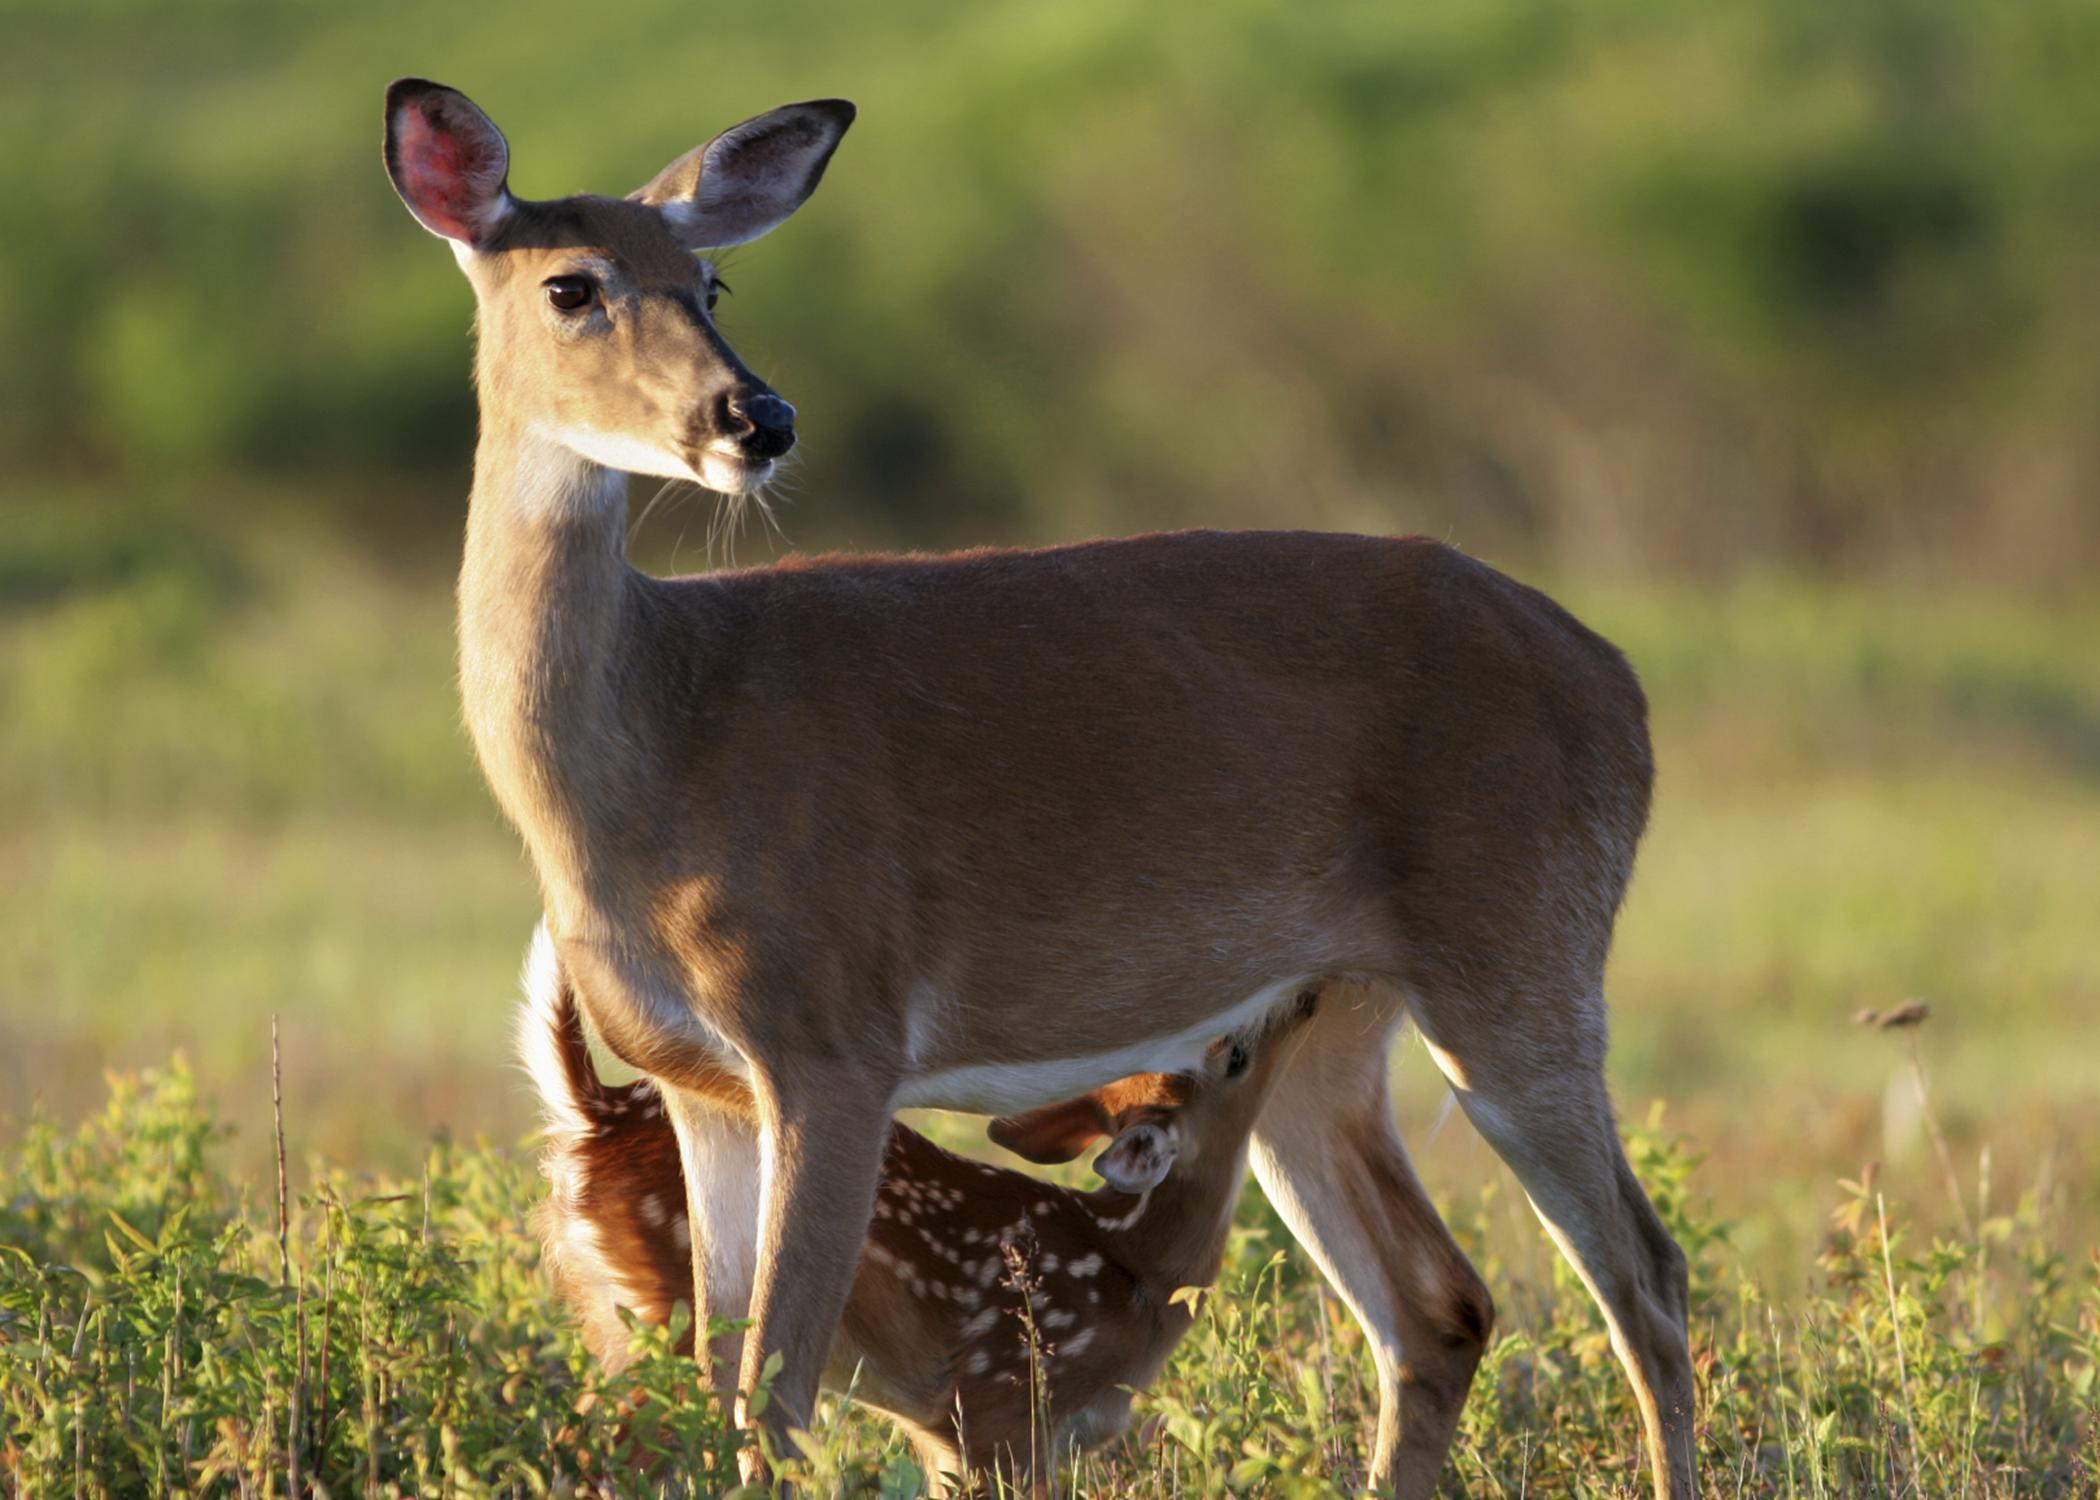 Growing fawns costs mother does a lot of energy, and providing milk for the young deer requires does to consume a lot of high-quality food to produce the right amounts of milk. (Photo by iStock)